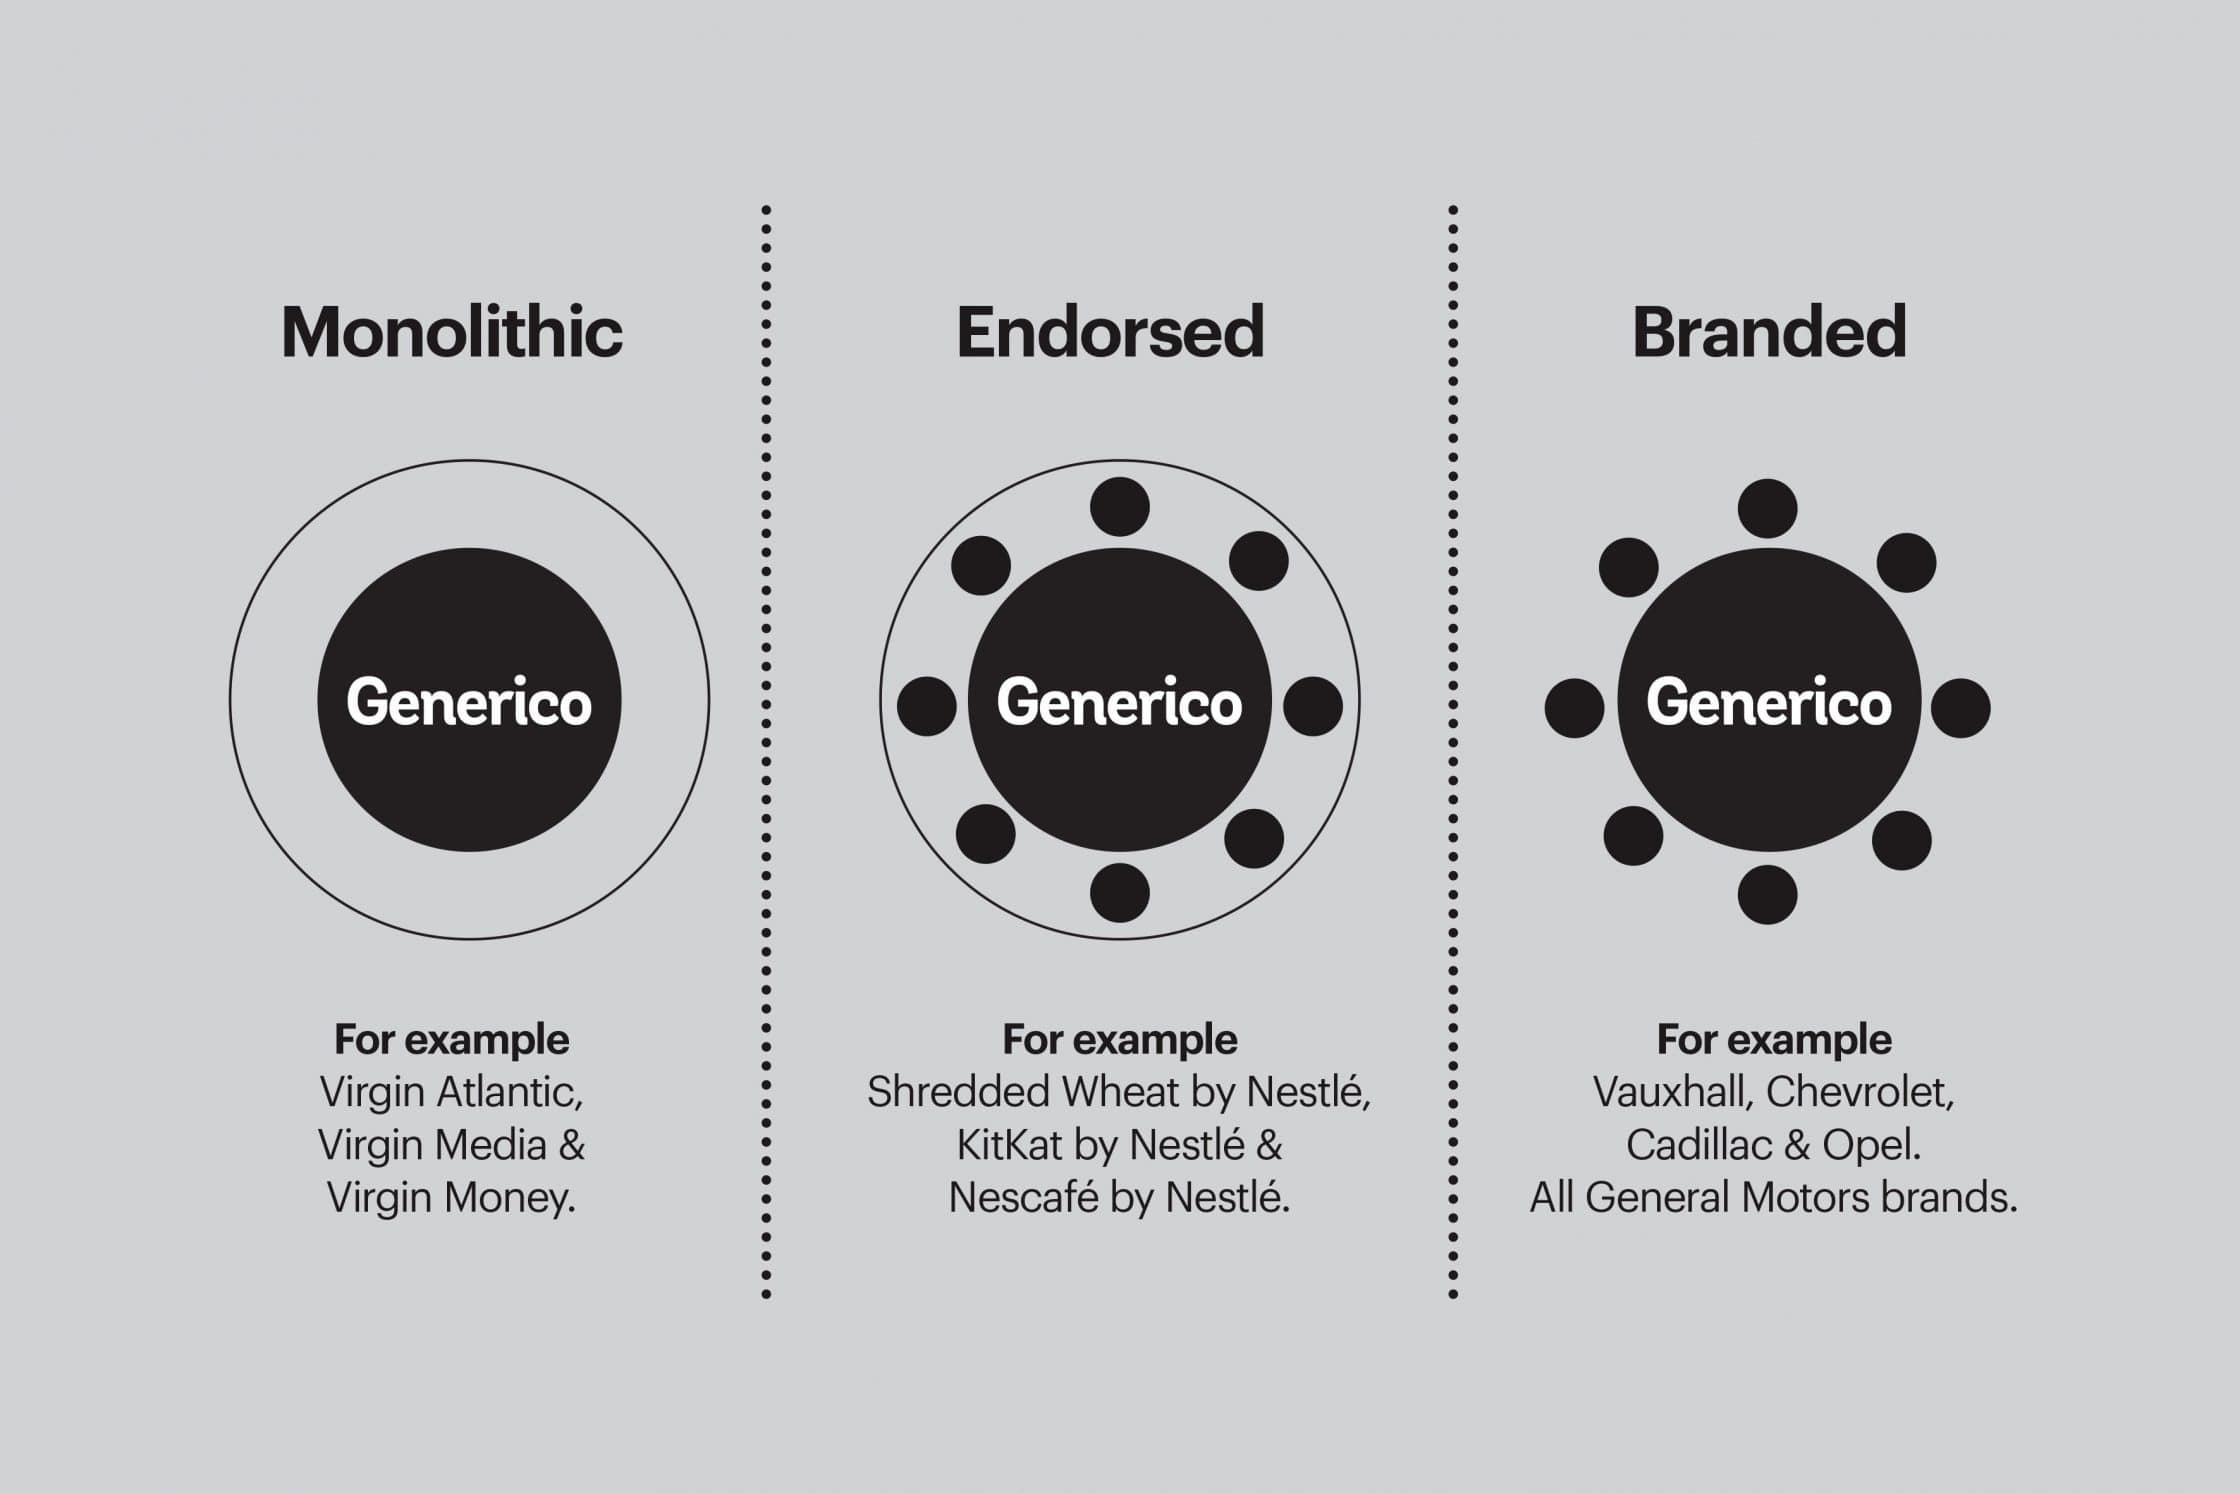 Visual representation of different brand architecture types.